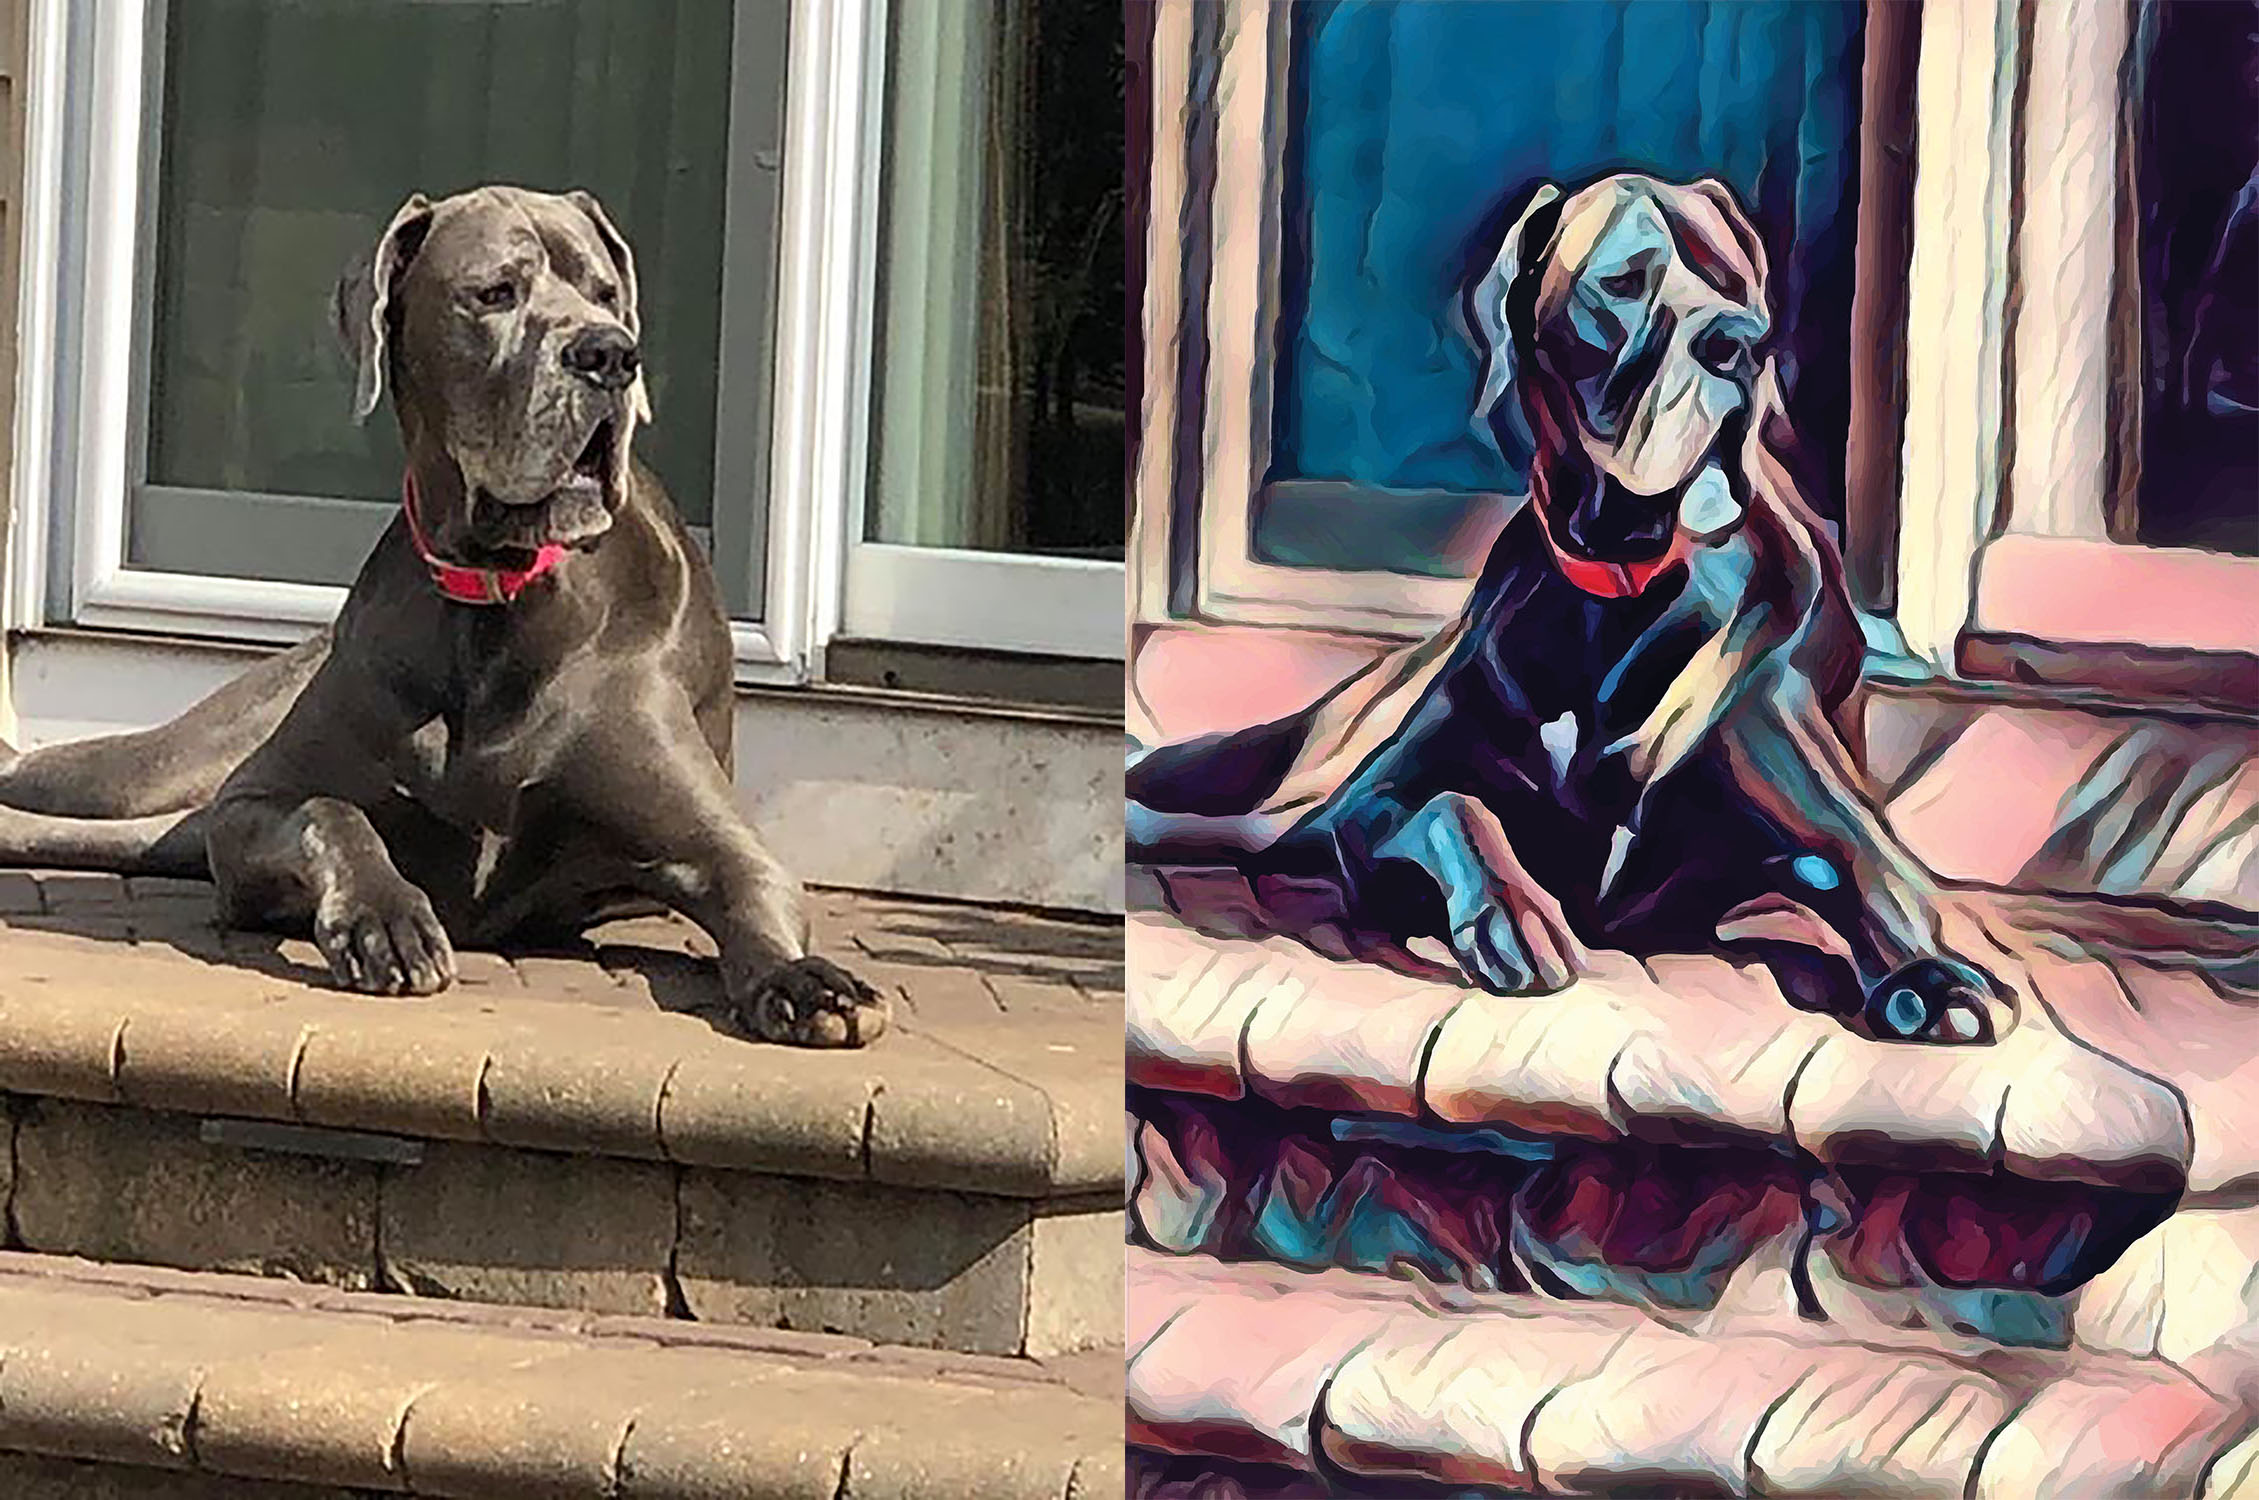 Before and after stylized image of a big dog lying on a patio